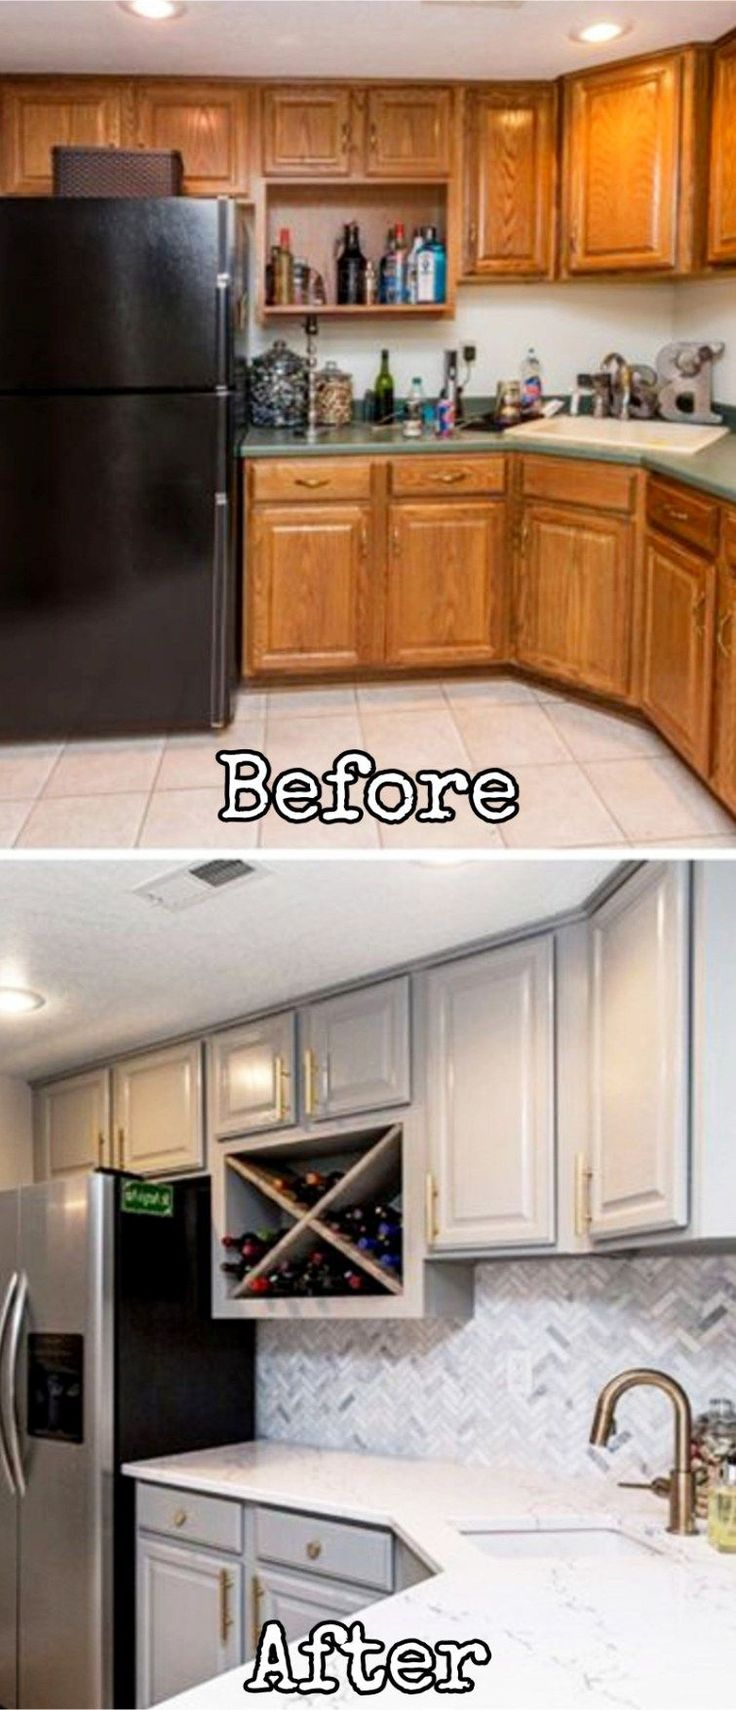 Small kitchen remodel - before and after pictures of small kitchen makeovers